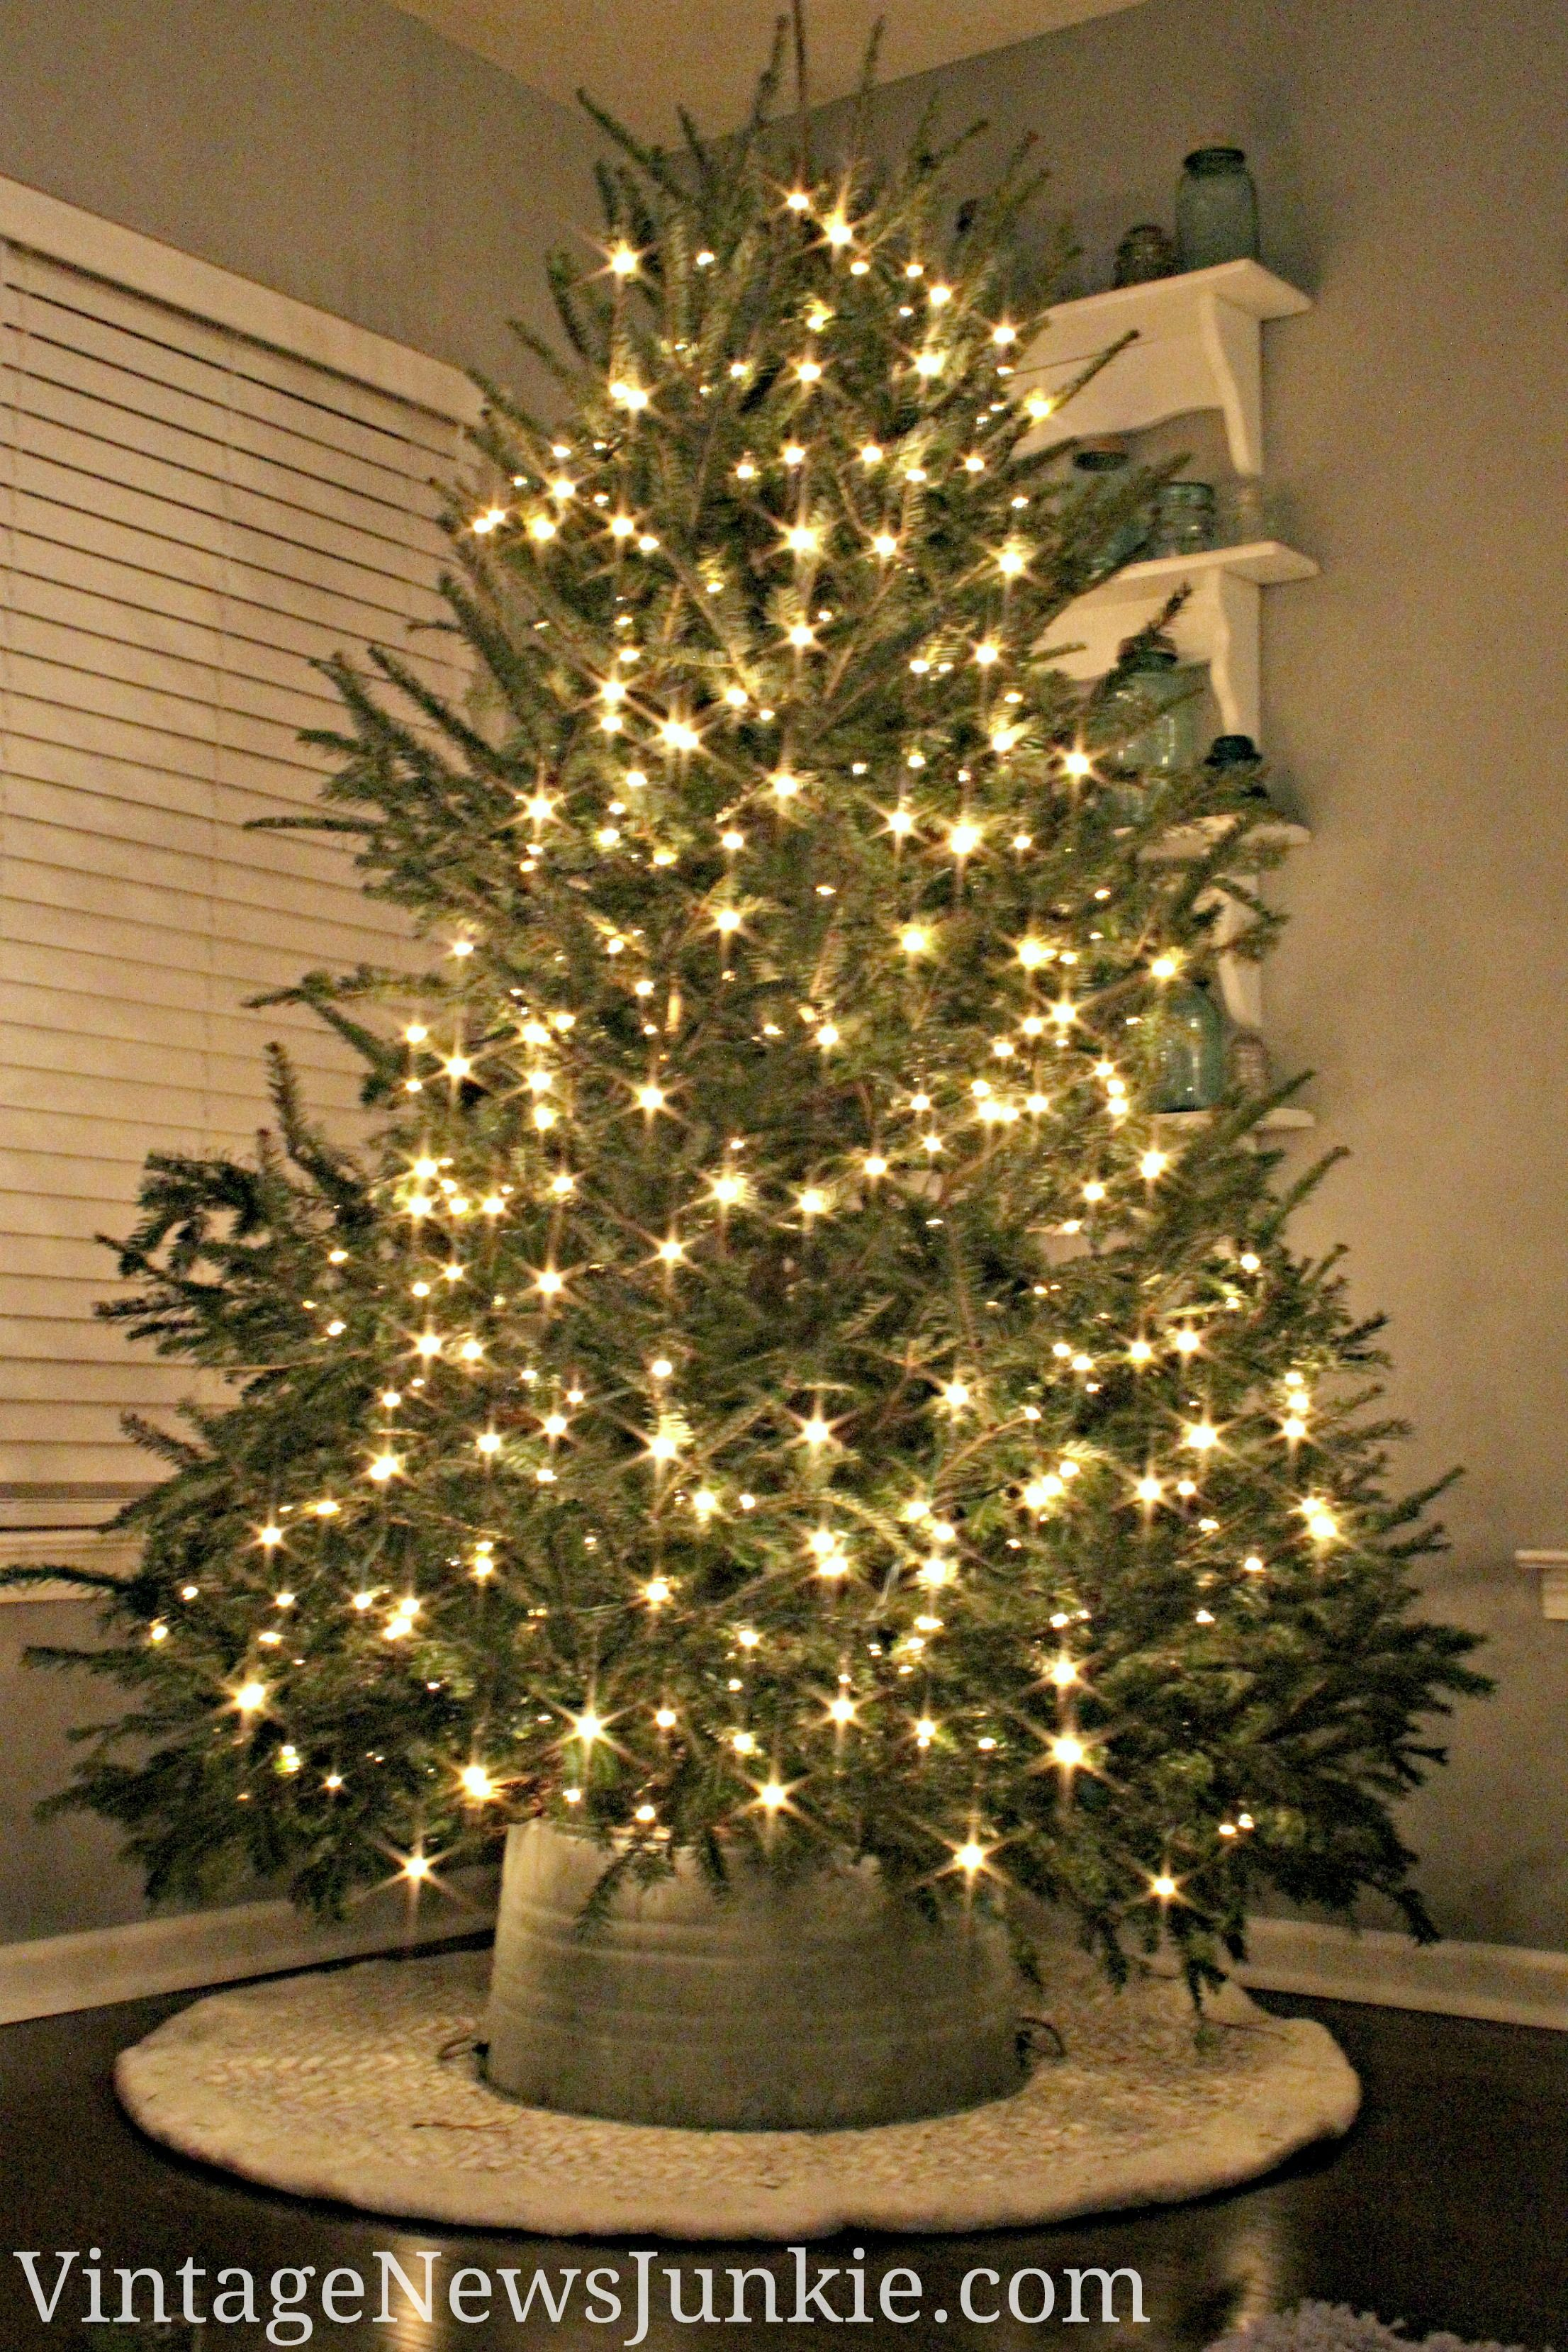 How to Make a Tree Skirt out of a Galvanized Tub {Crate